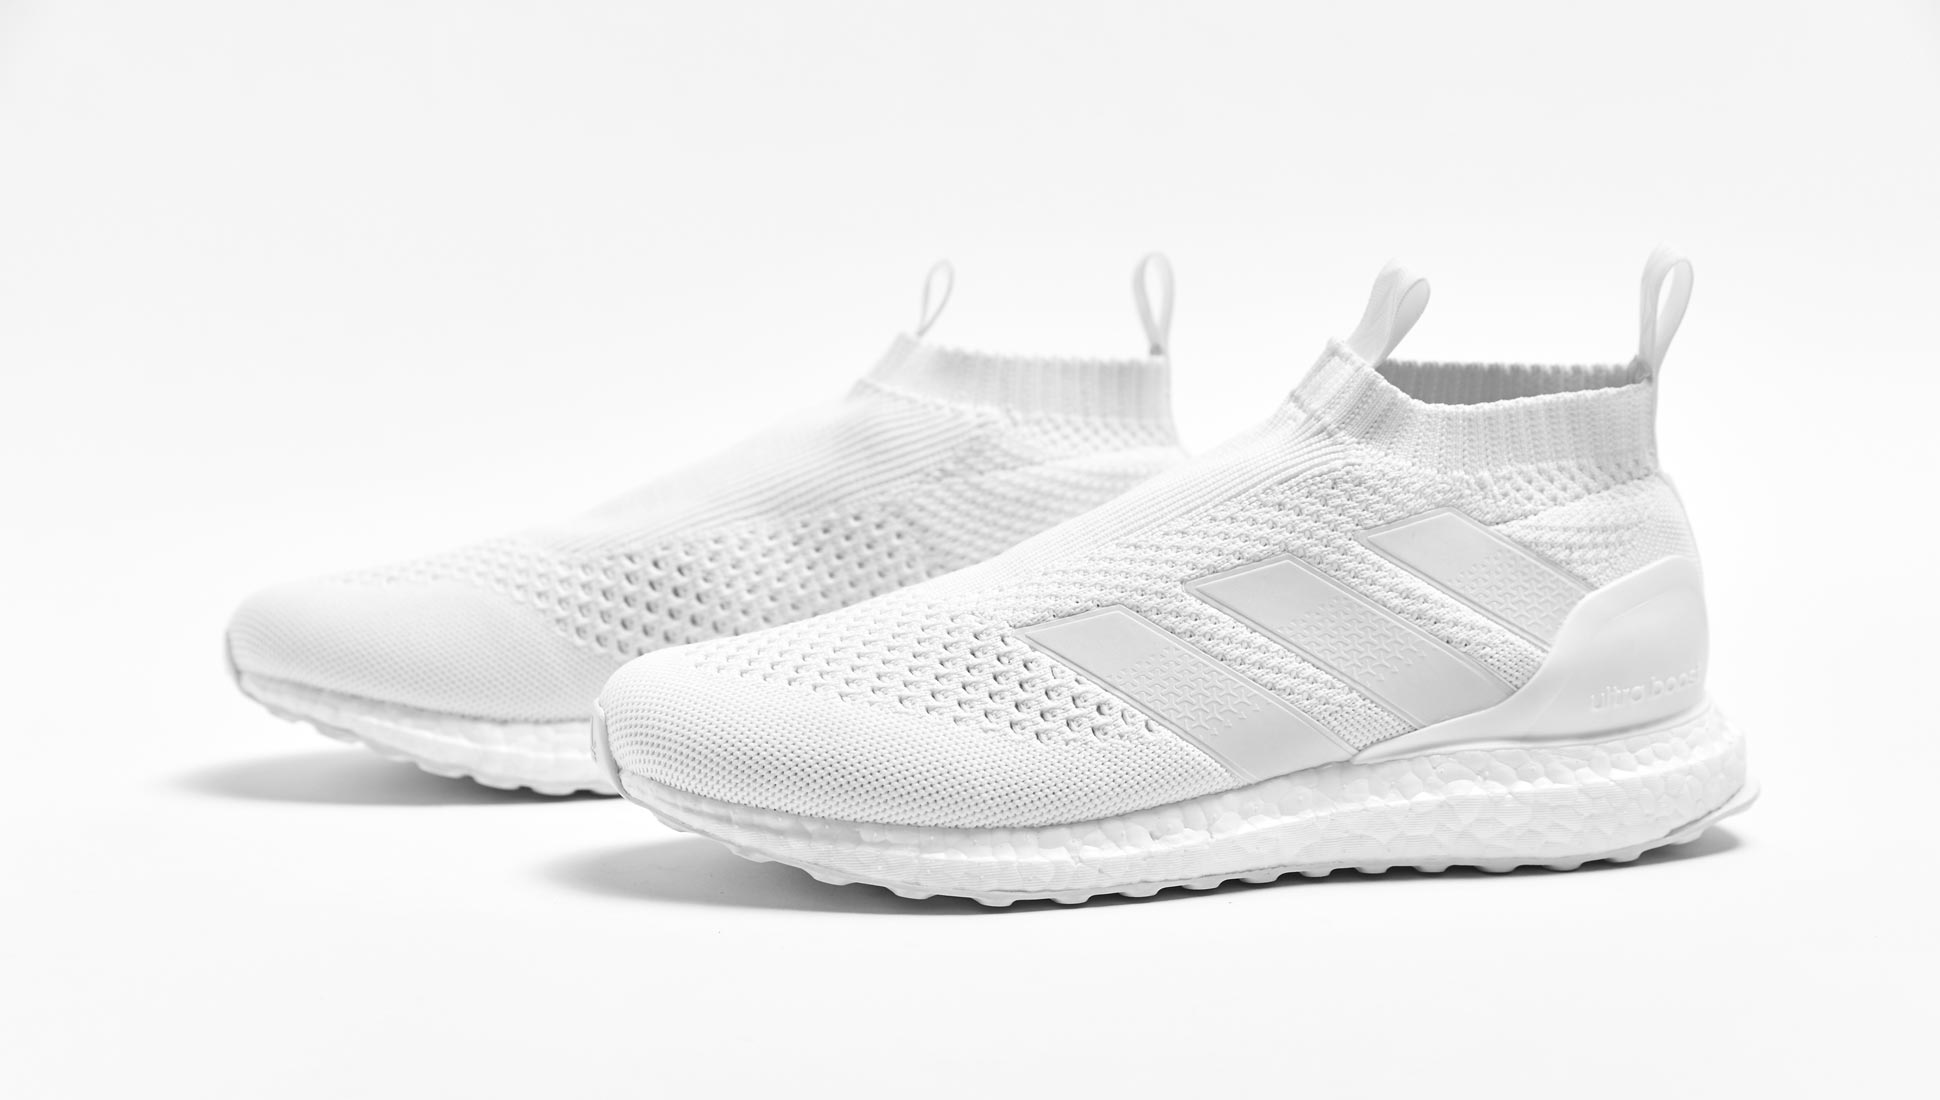 6a001440006c5 adidas ACE 16+ Purecontrol Ultra Boost